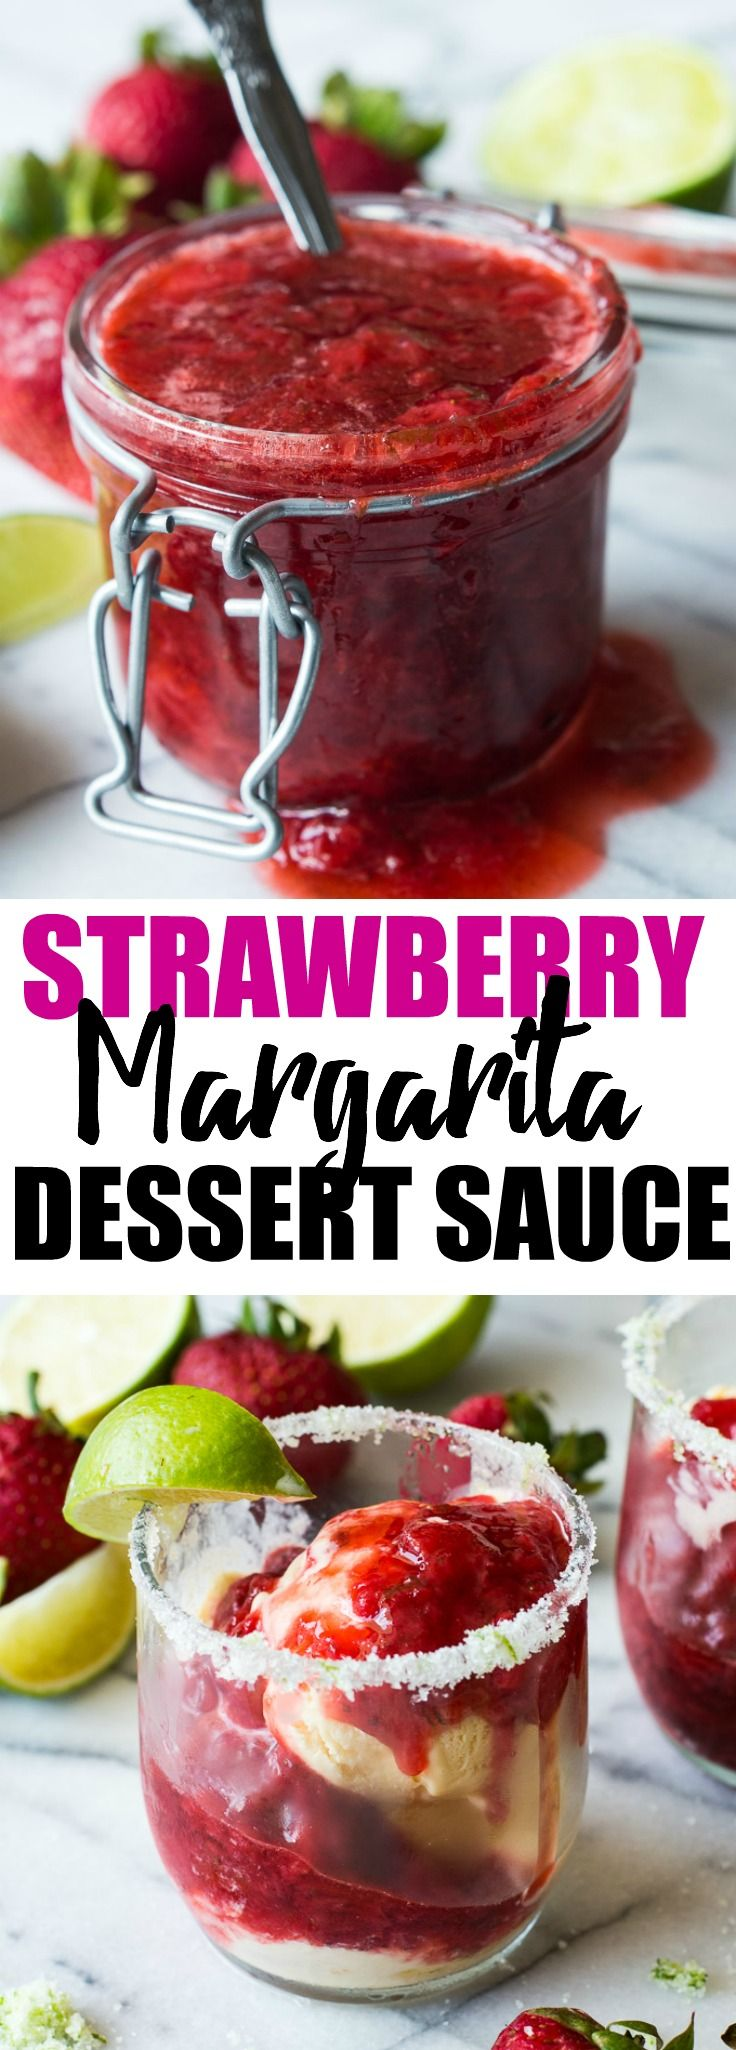 Strawberry Margarita Dessert Sauce is the perfect topping for your ice cream, cakes, cookies, cheesecakes.  Super easy to make, you will be using this on everything!